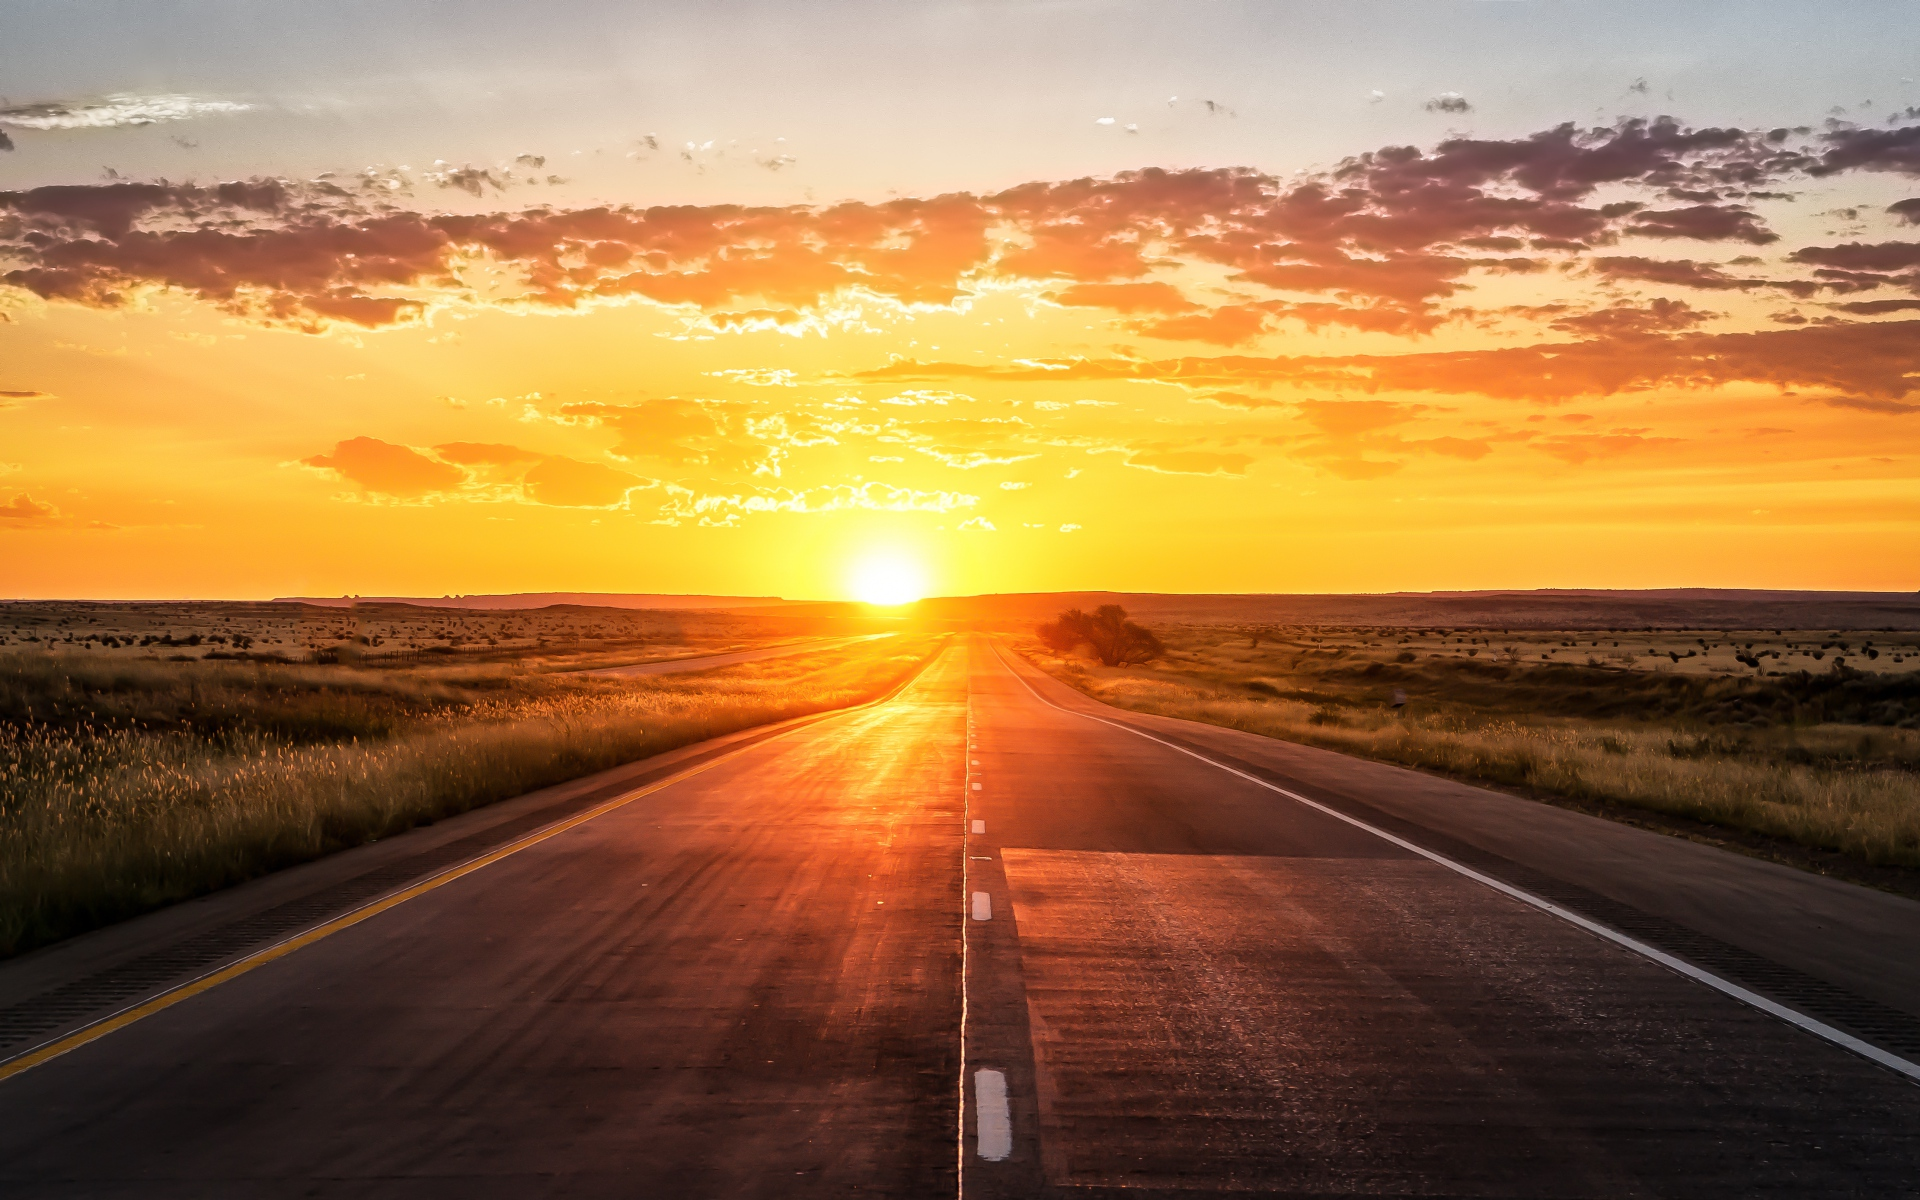 road sunset wallpaper